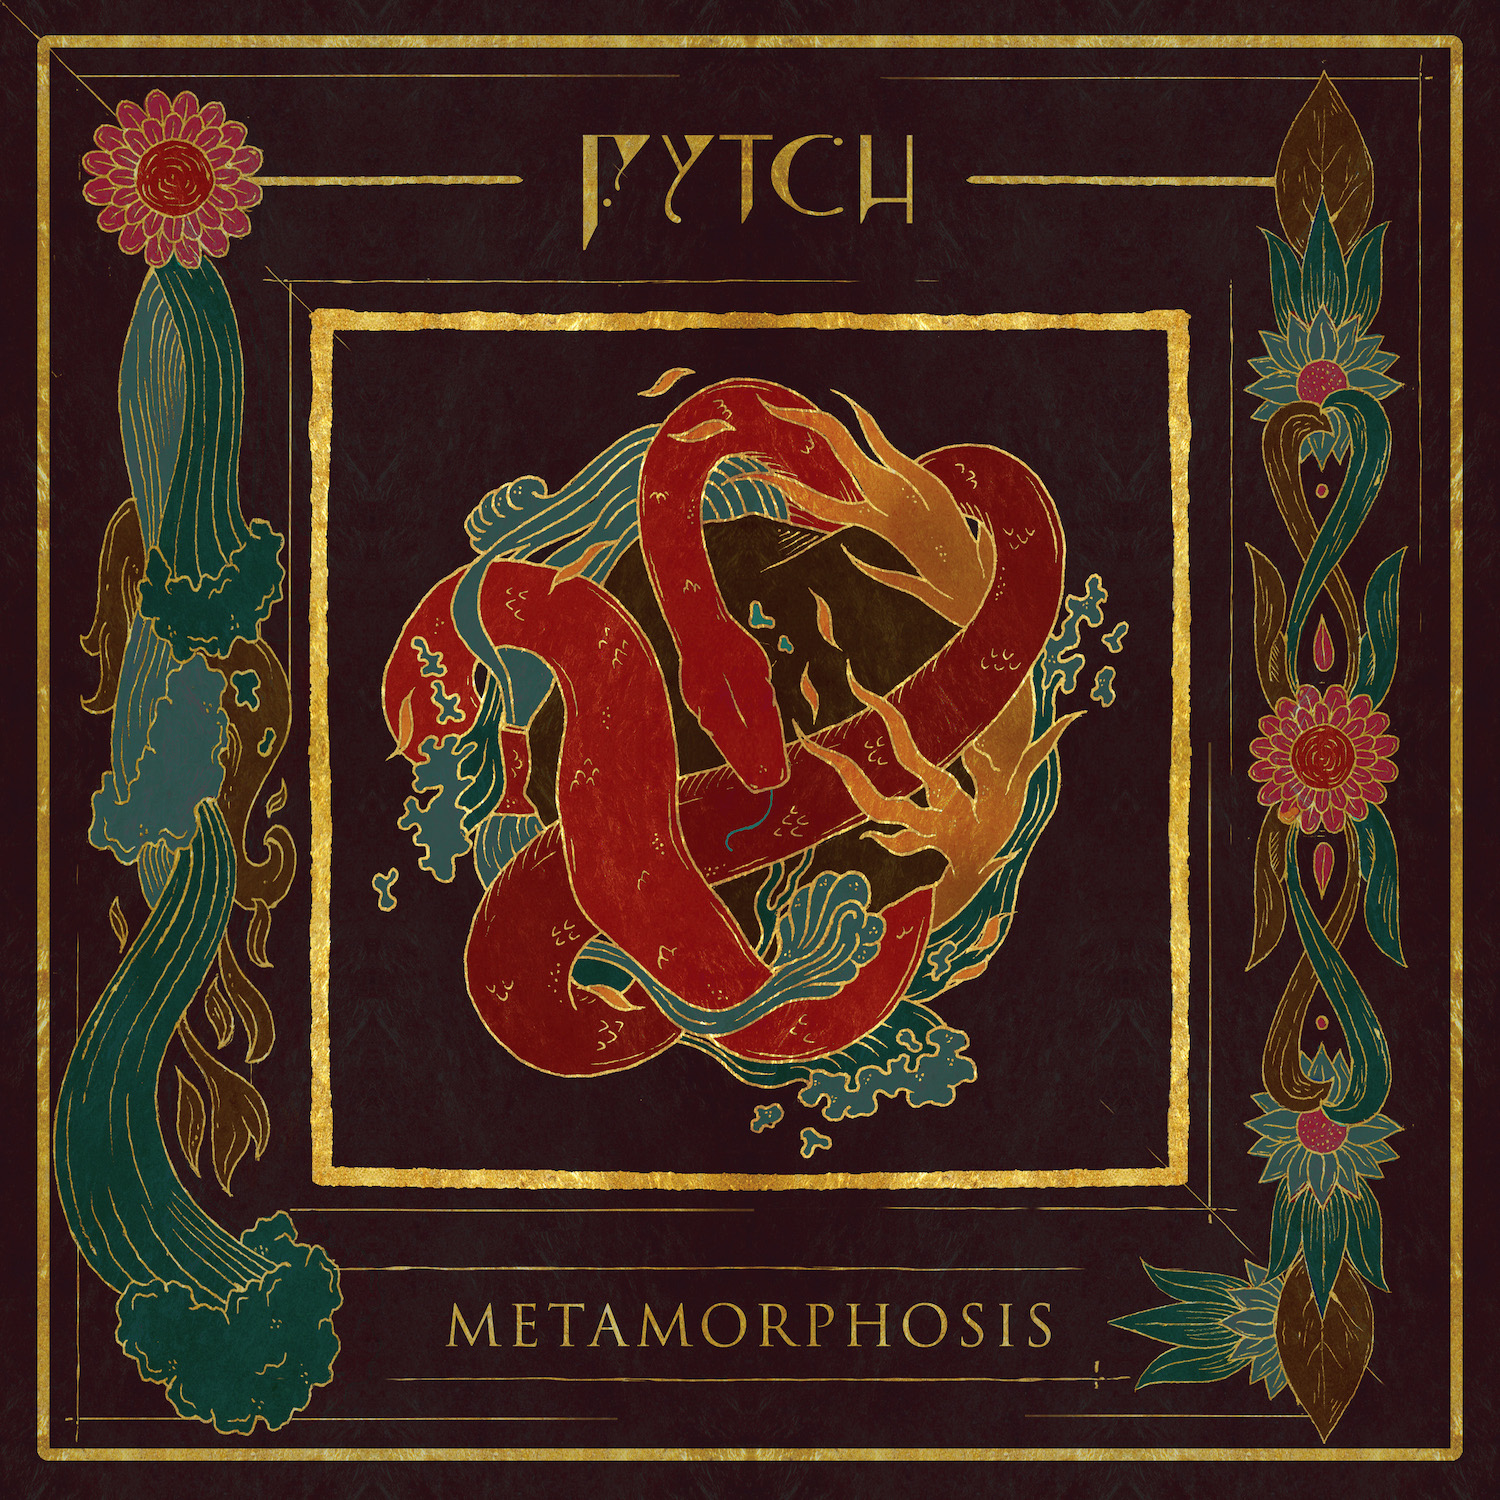 Fytch - Metamorphosis_1500x1500.jpeg